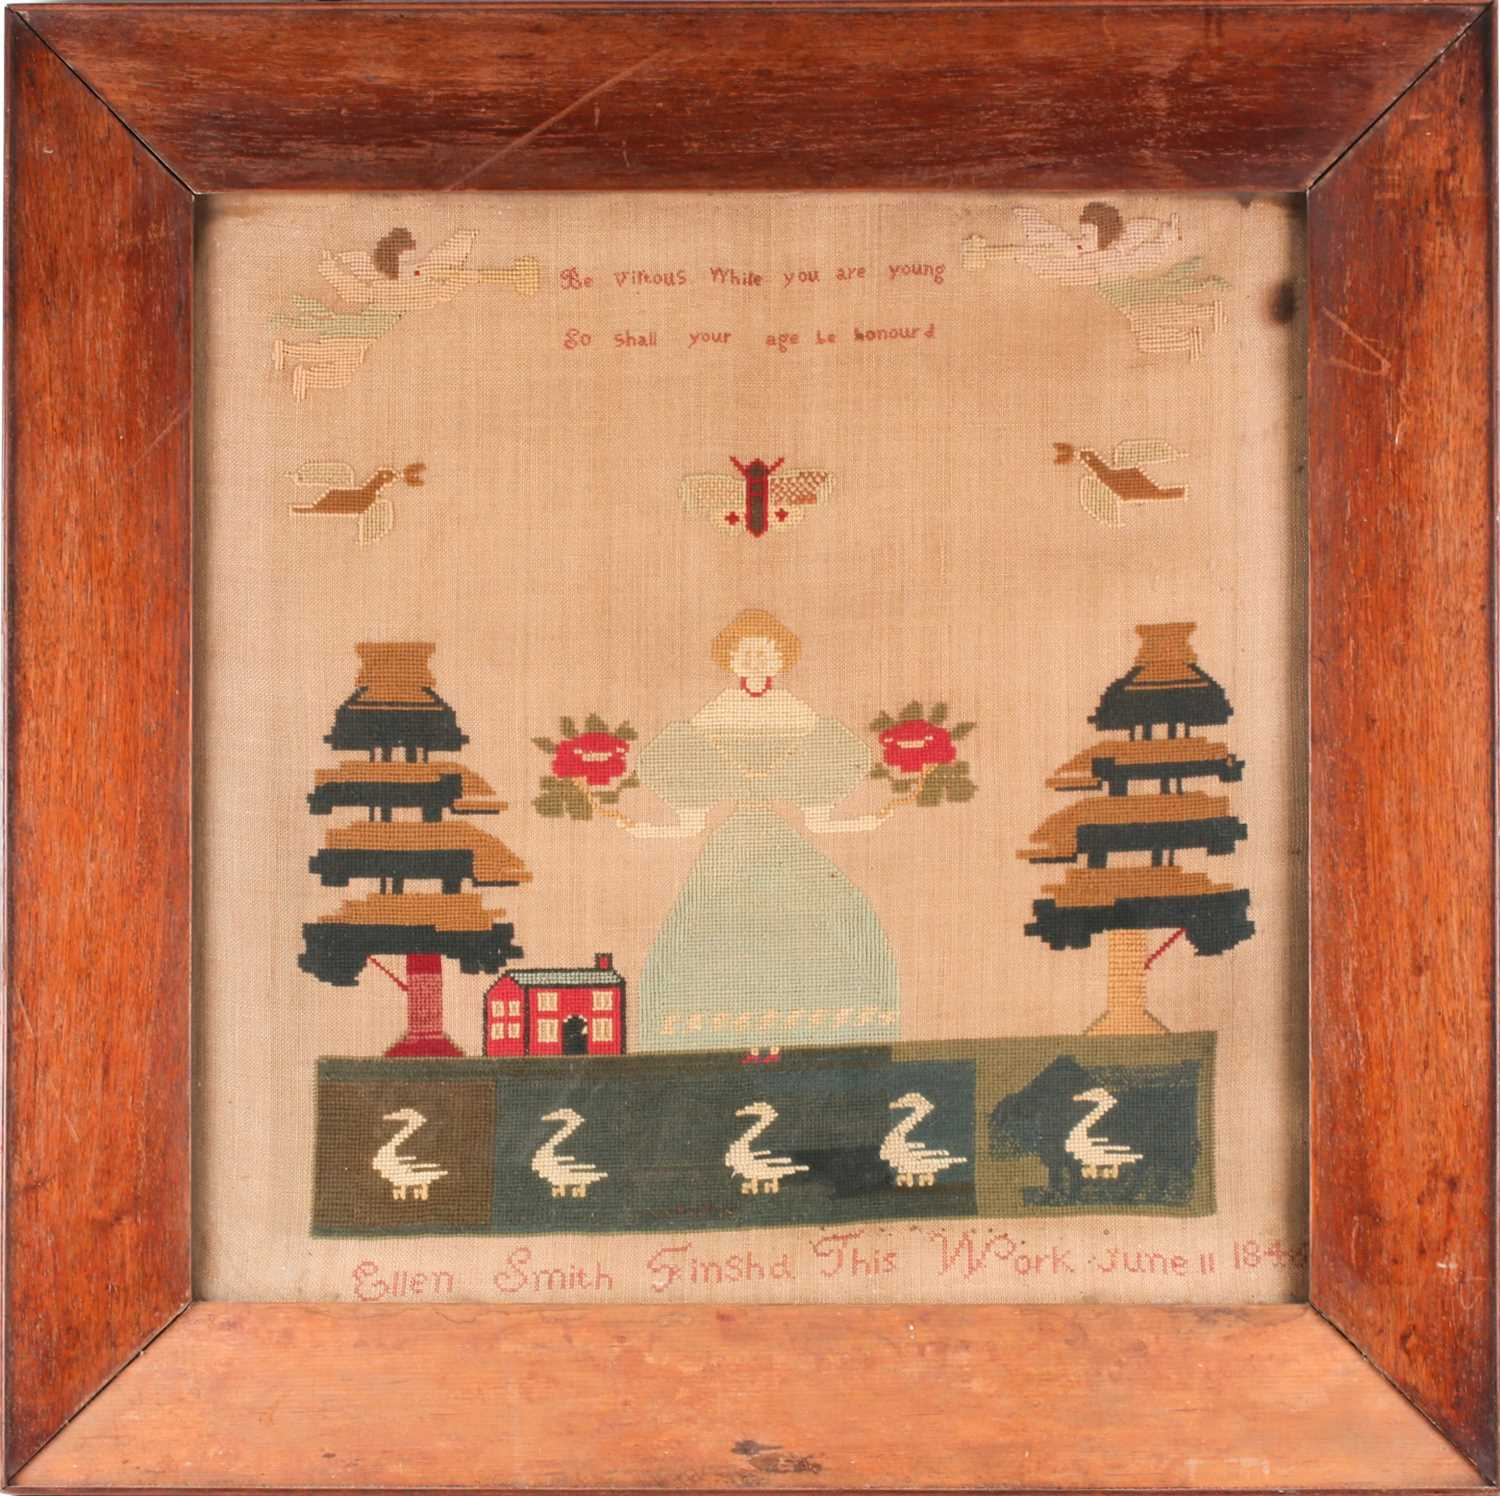 A large 19th century sampler, with trumpeting angels flanking verse ' Be vituous while you are